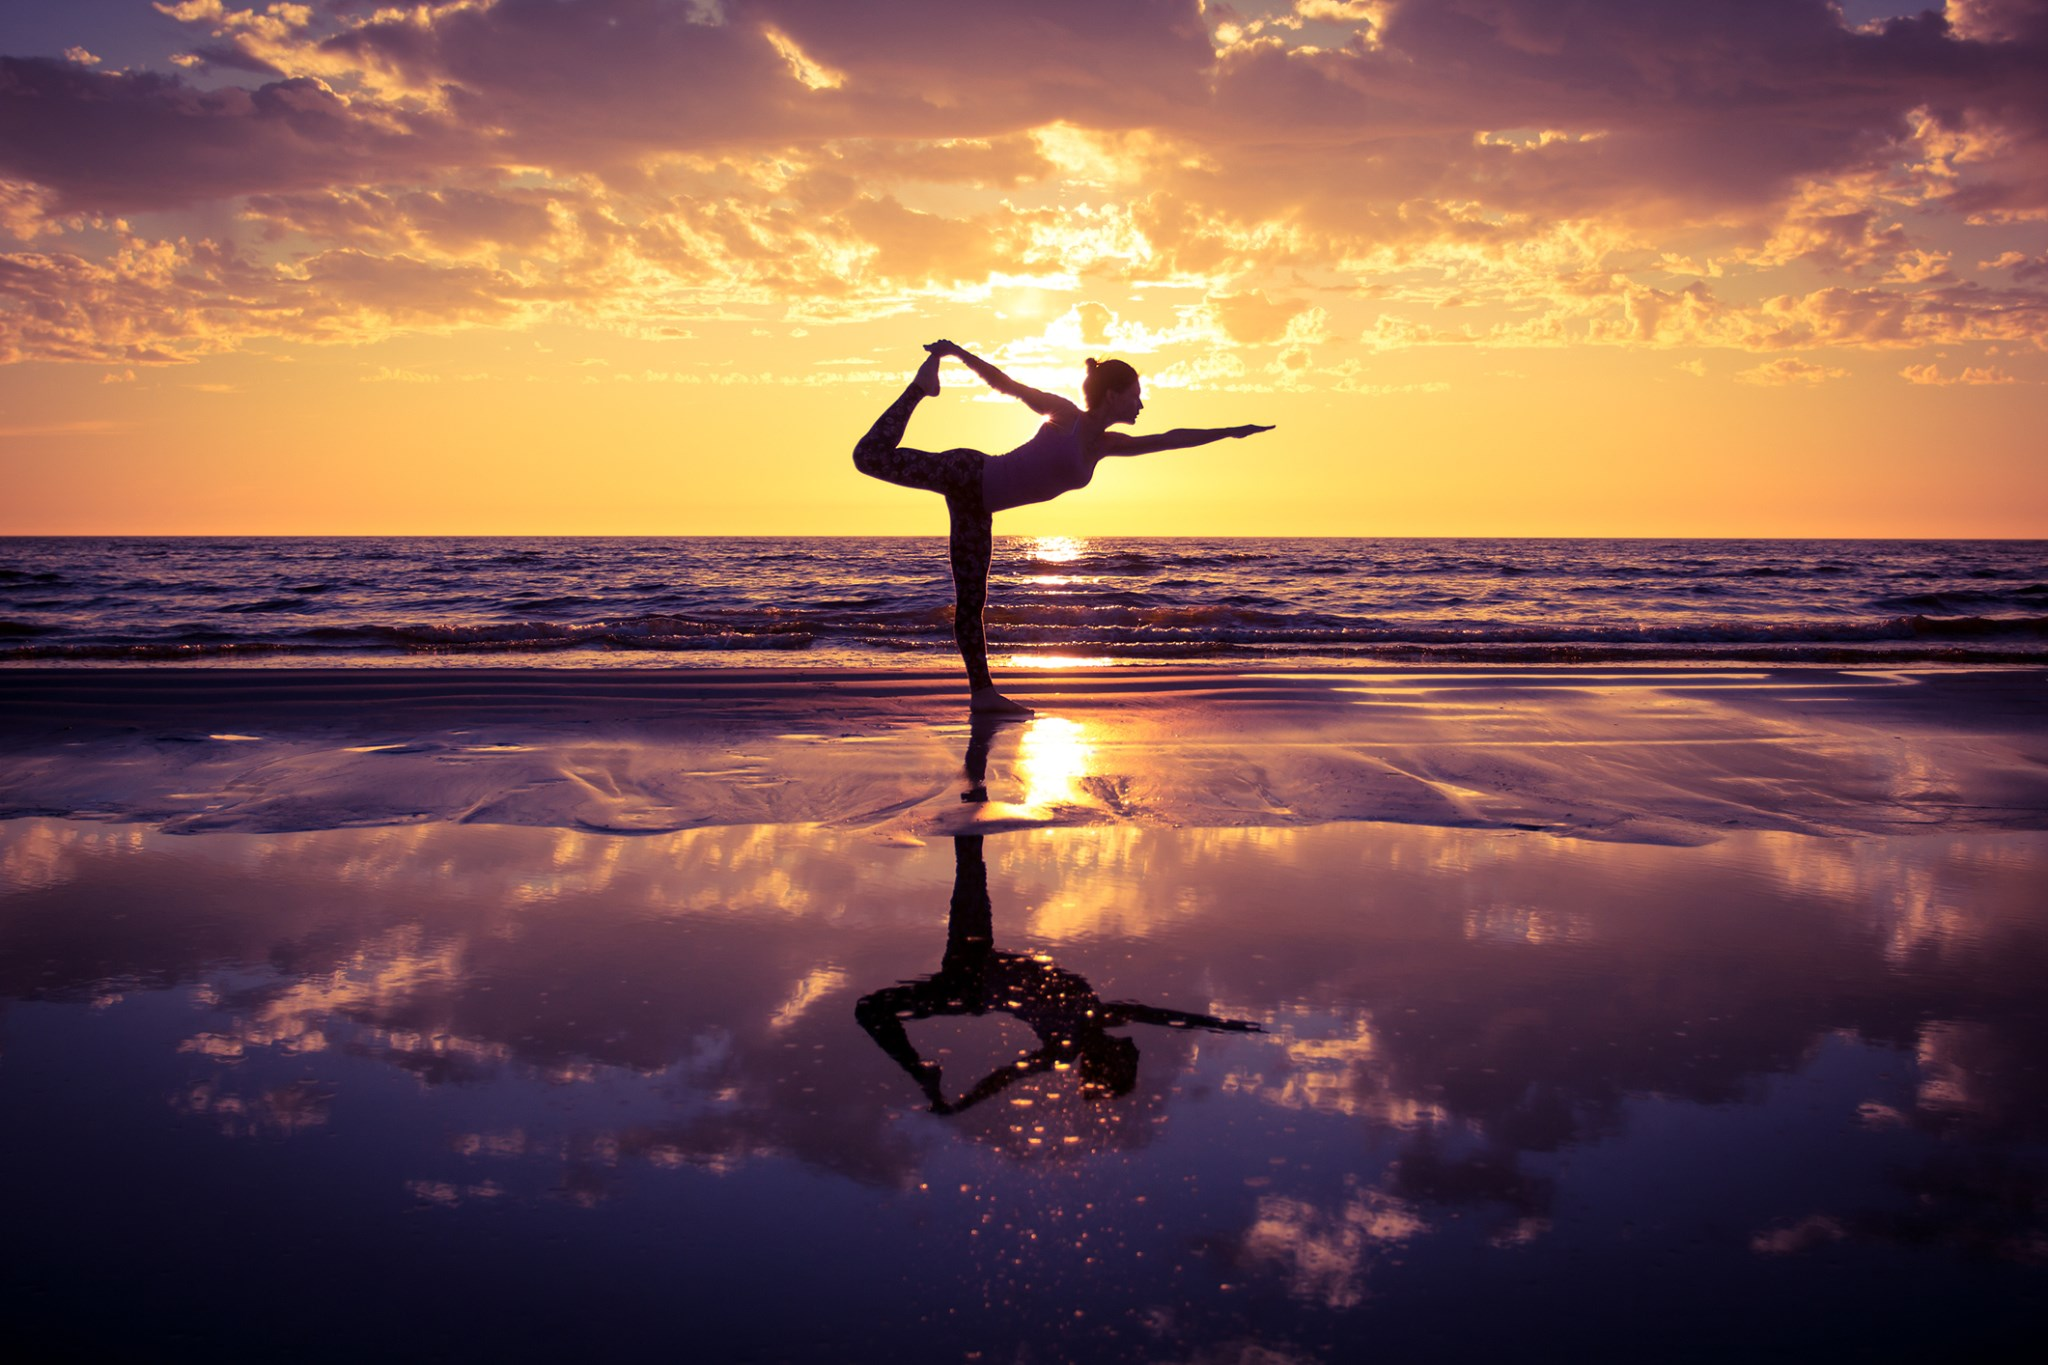 Yoga for you, your health, and wellbeing